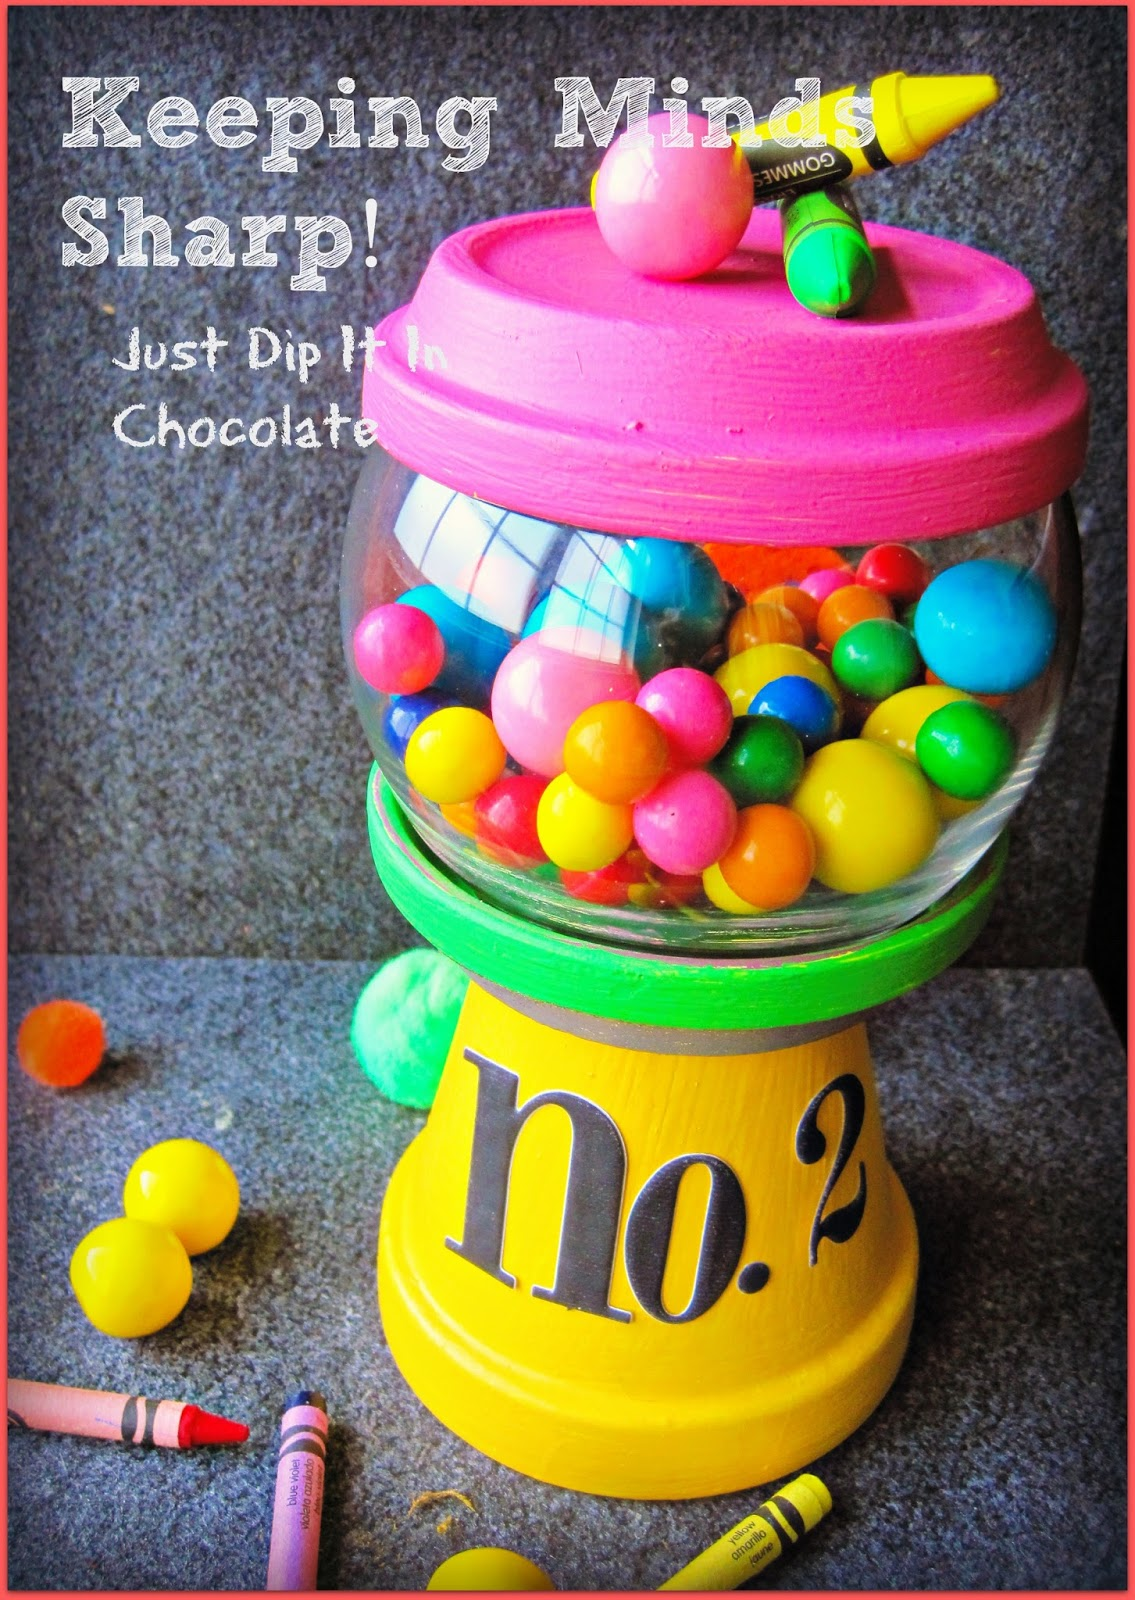 Just Dip It In Chocolate: DIY Pencil Gumball Machine ...